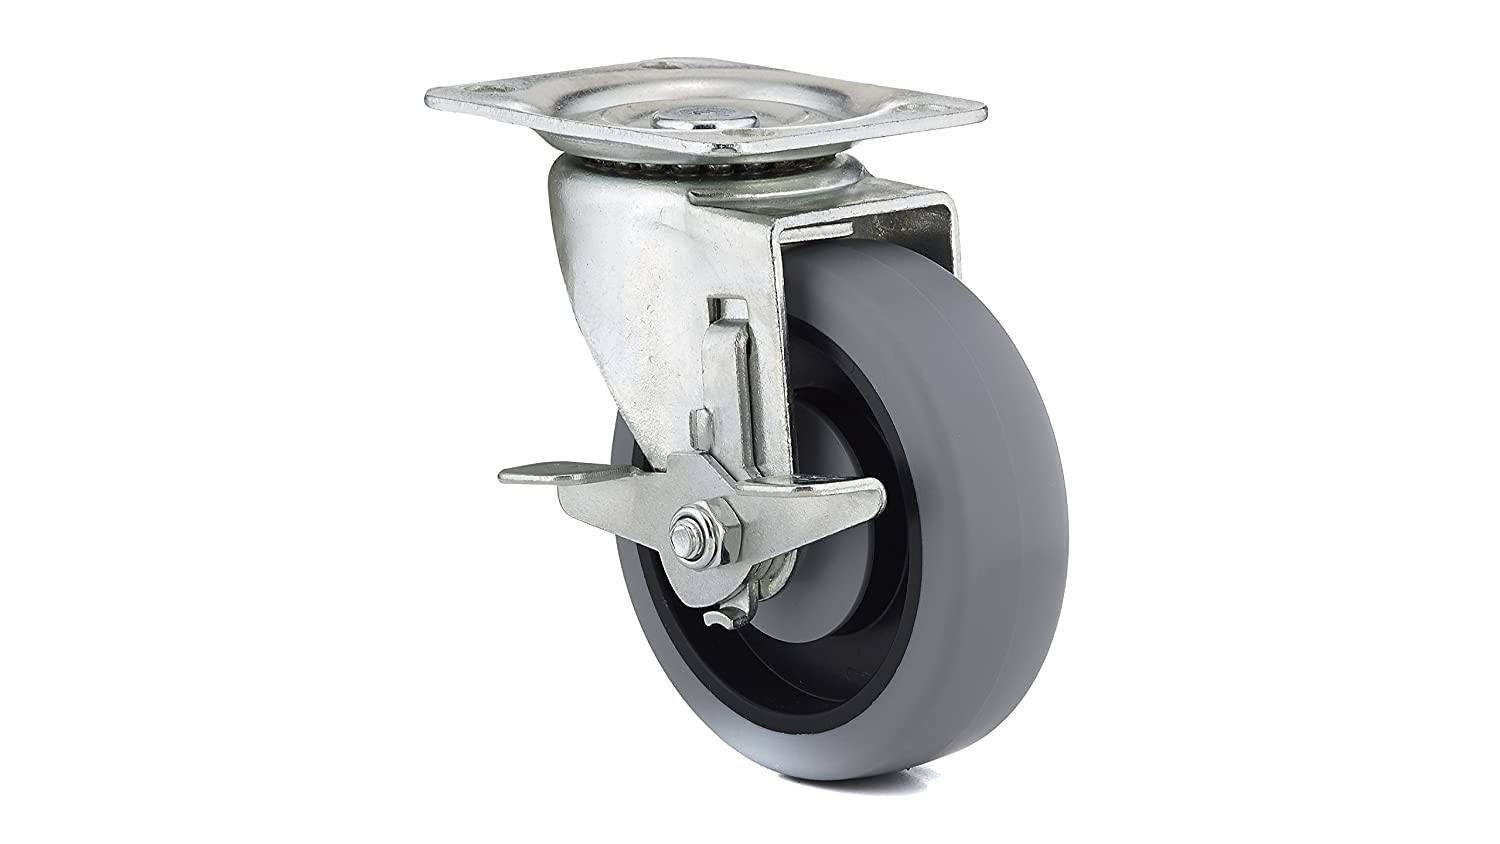 Richelieu Hardware F25622 Industrial Gray Thermoplastic Rubber Caster Swivel with Brake Gray Finish